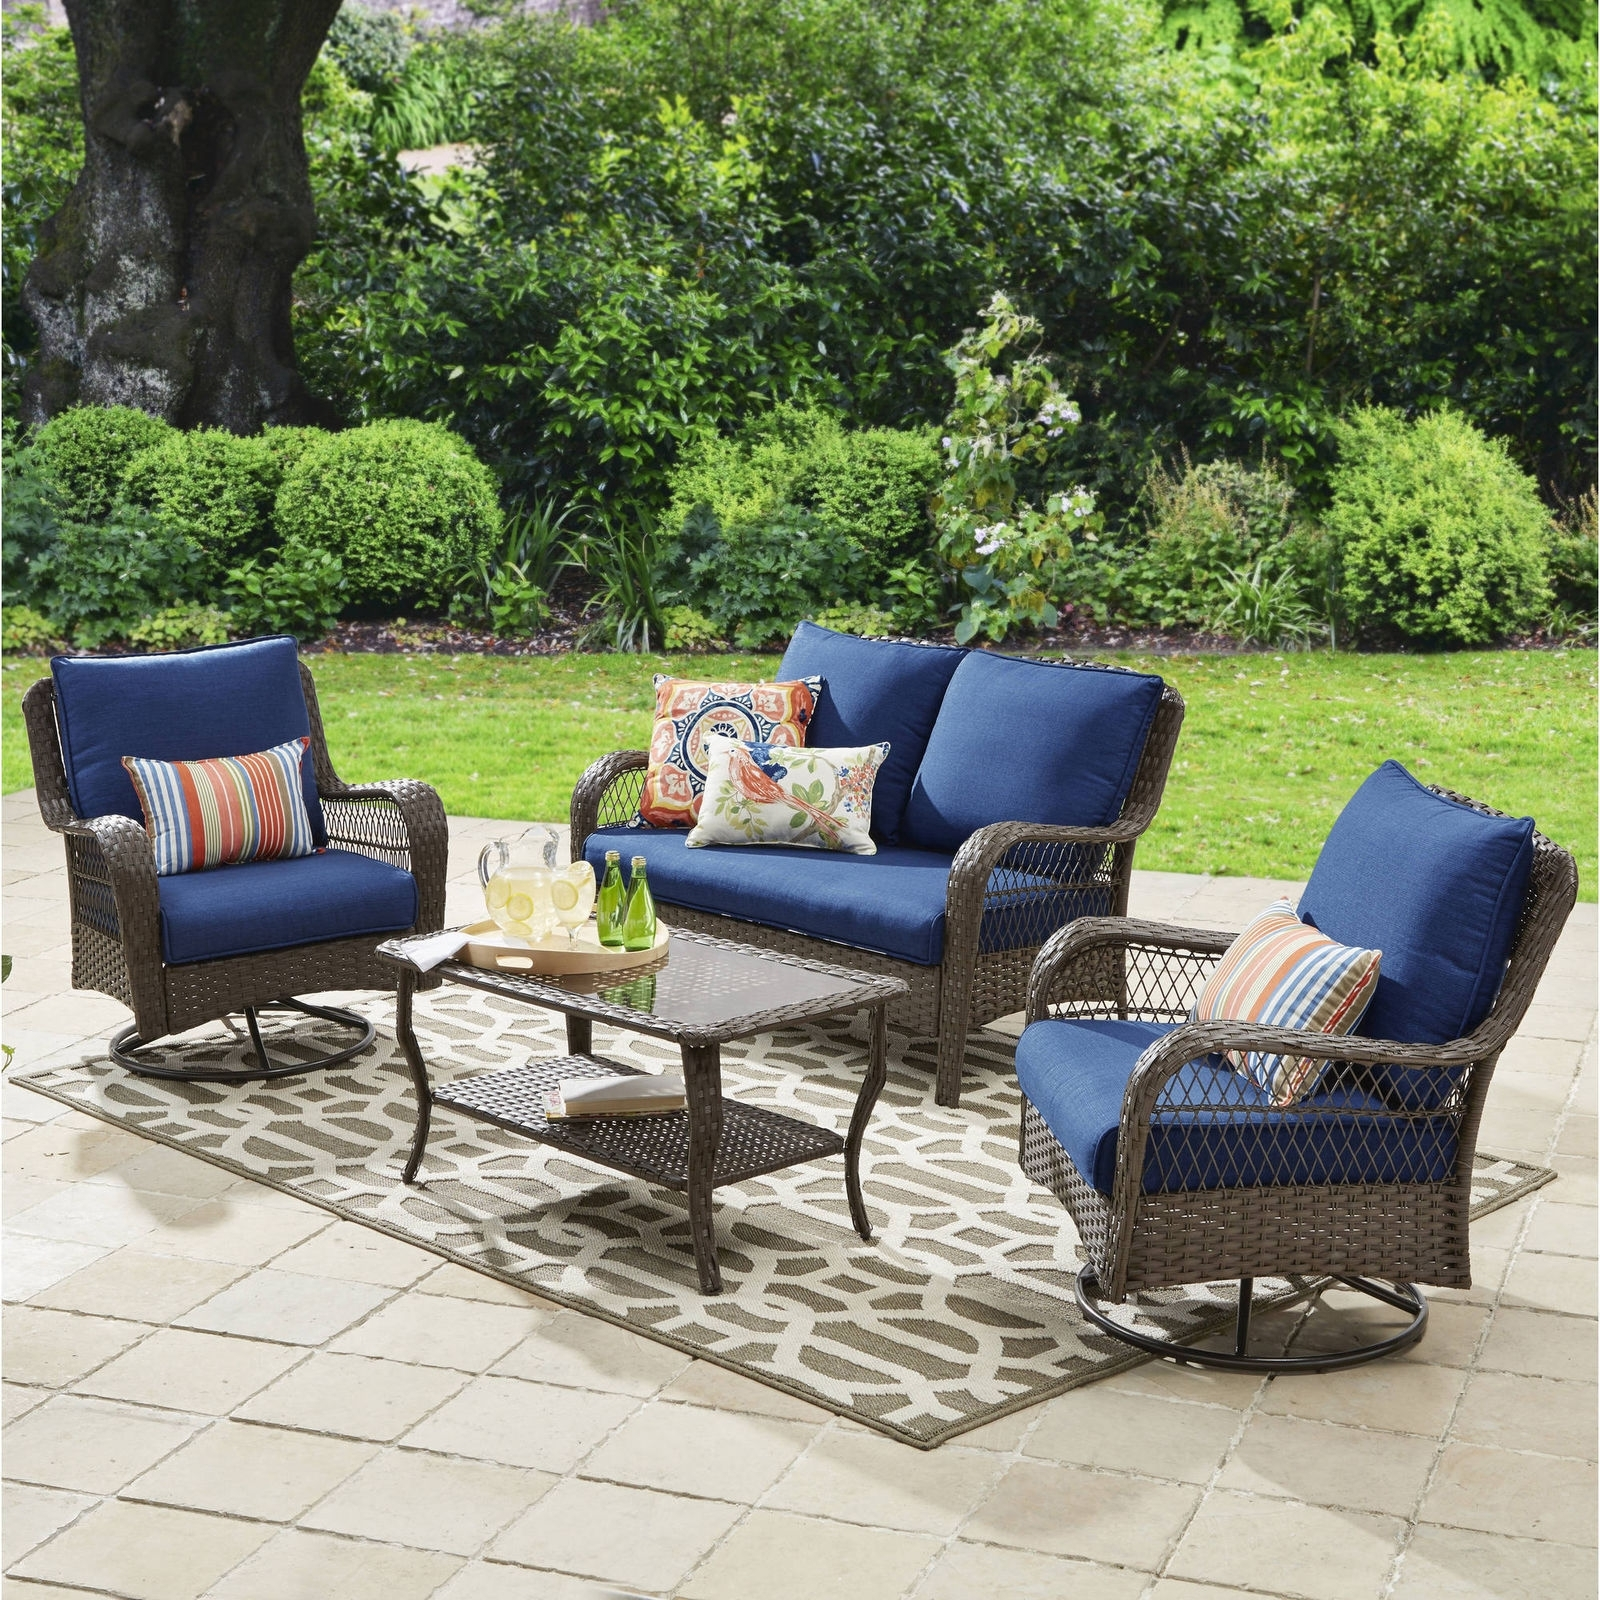 Newest Ebay Patio Conversation Sets Intended For Colebrook 4 Piece Outdoor Patio Conversation Set Seats 4 Deck (View 18 of 20)